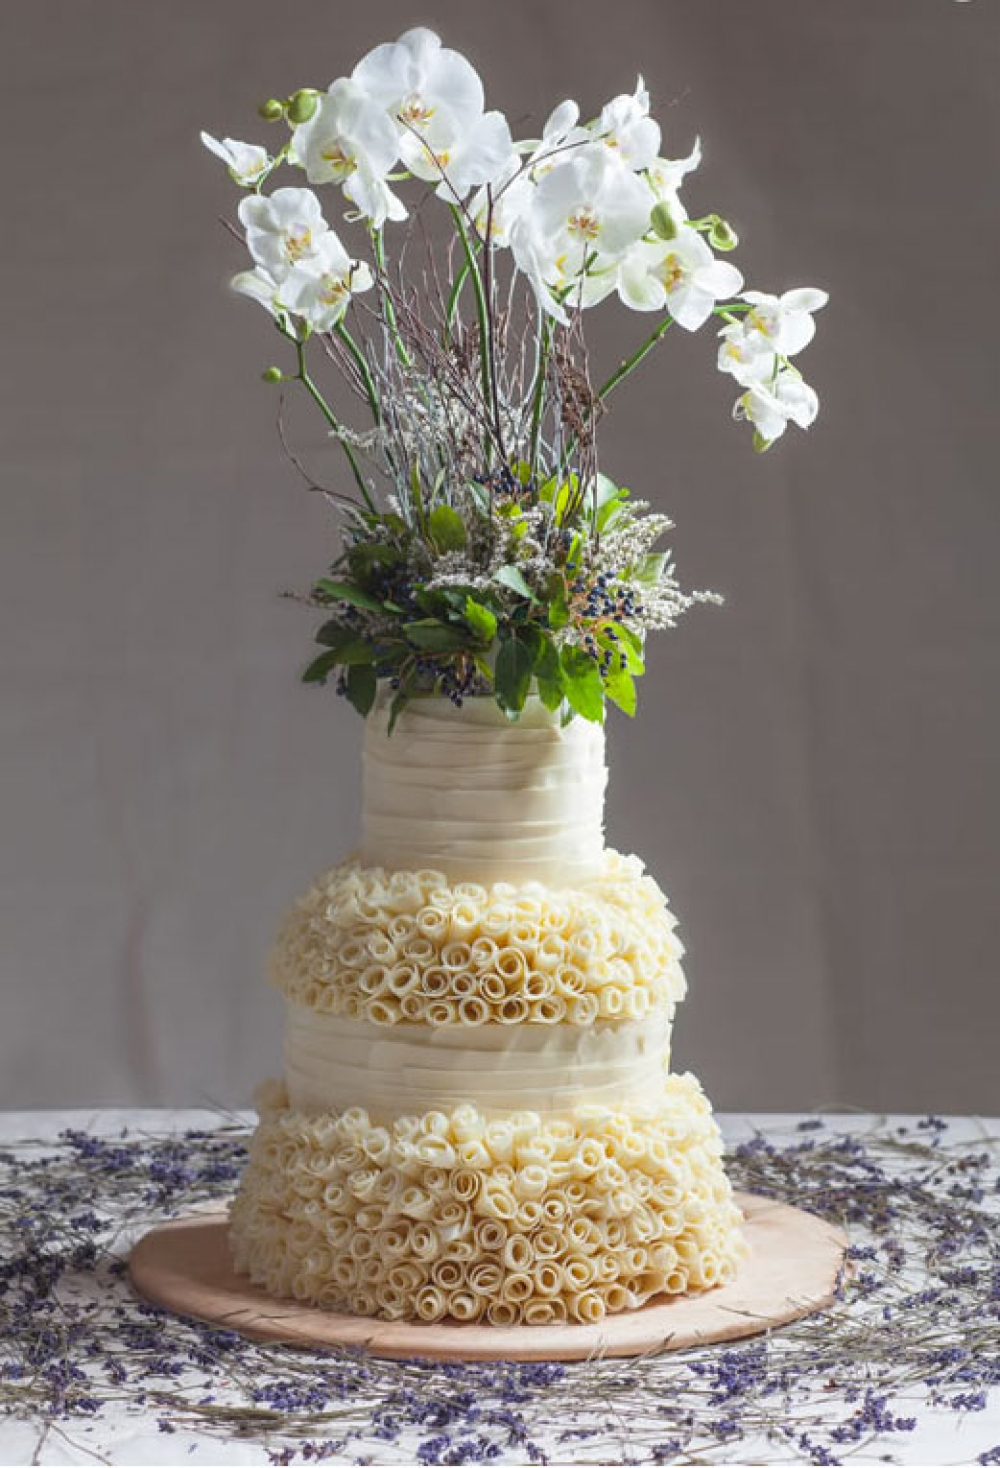 The Natural Cake Company